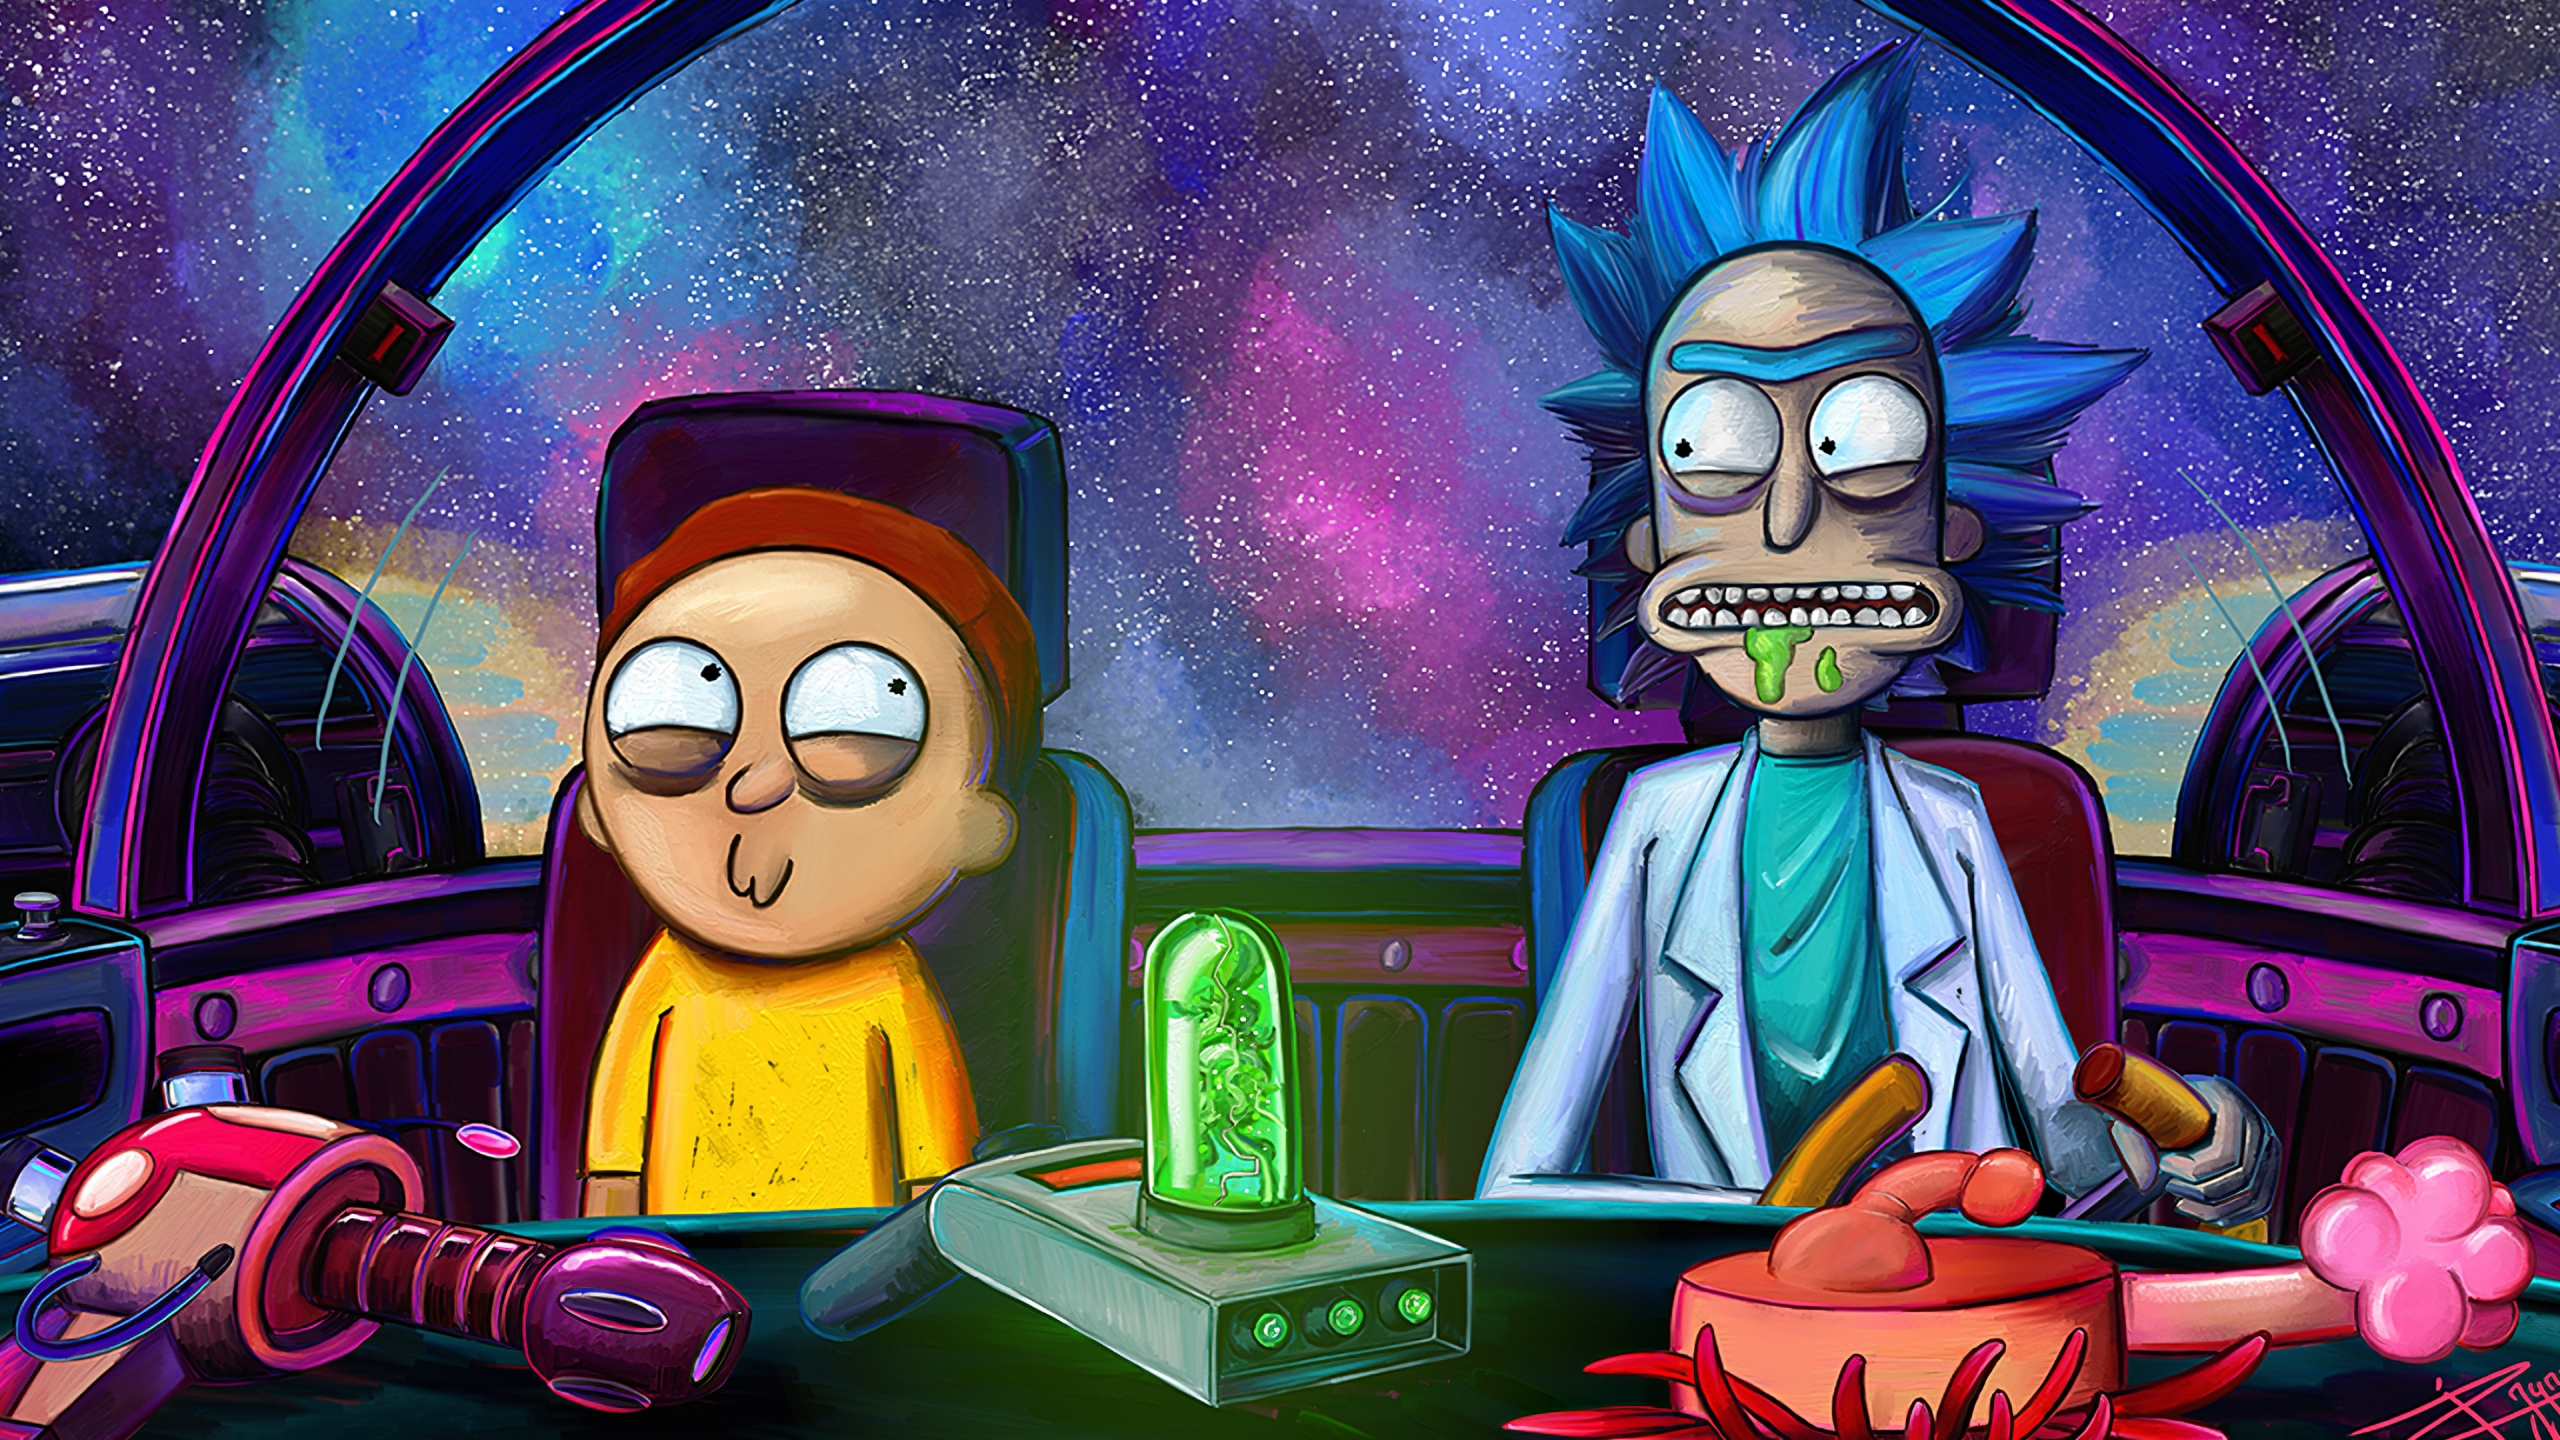 Rick And Morty In Space Ship Wallpaper 4k Ultra Hd Id 4518